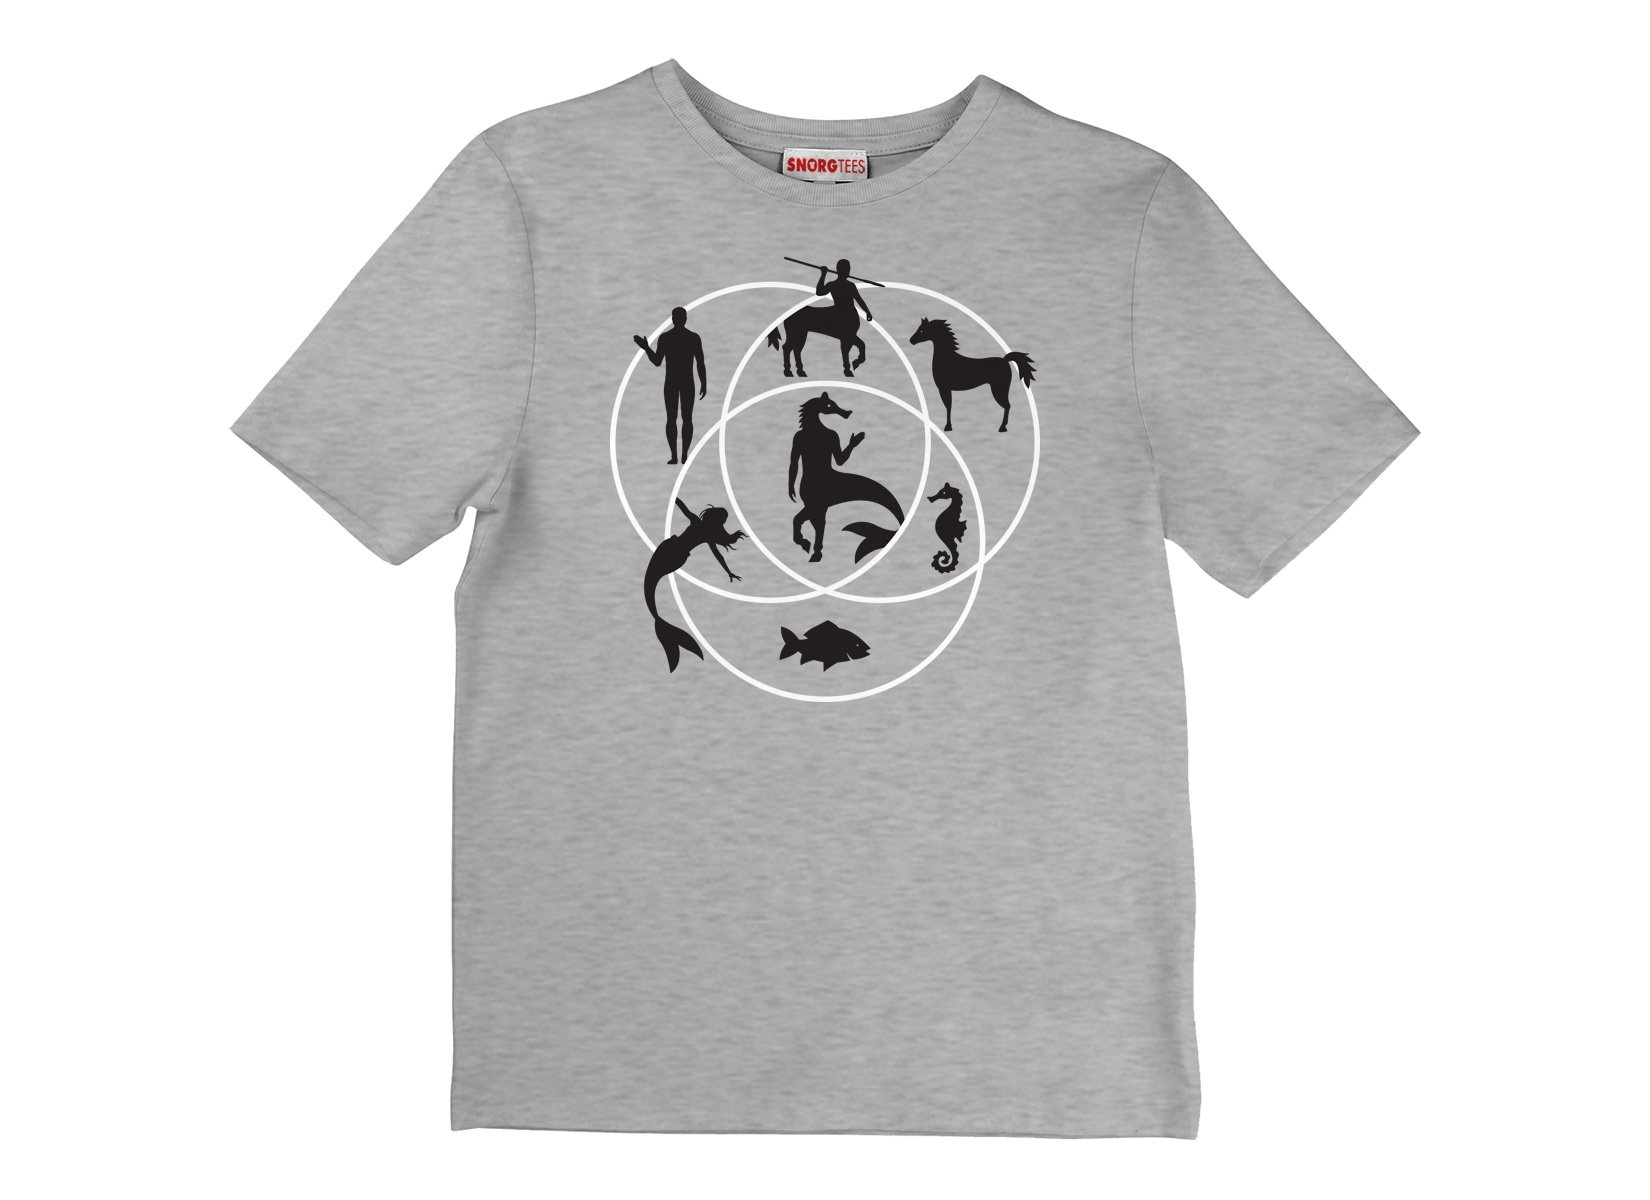 Human Horse Fish Venn Diagram on Kids T-Shirt